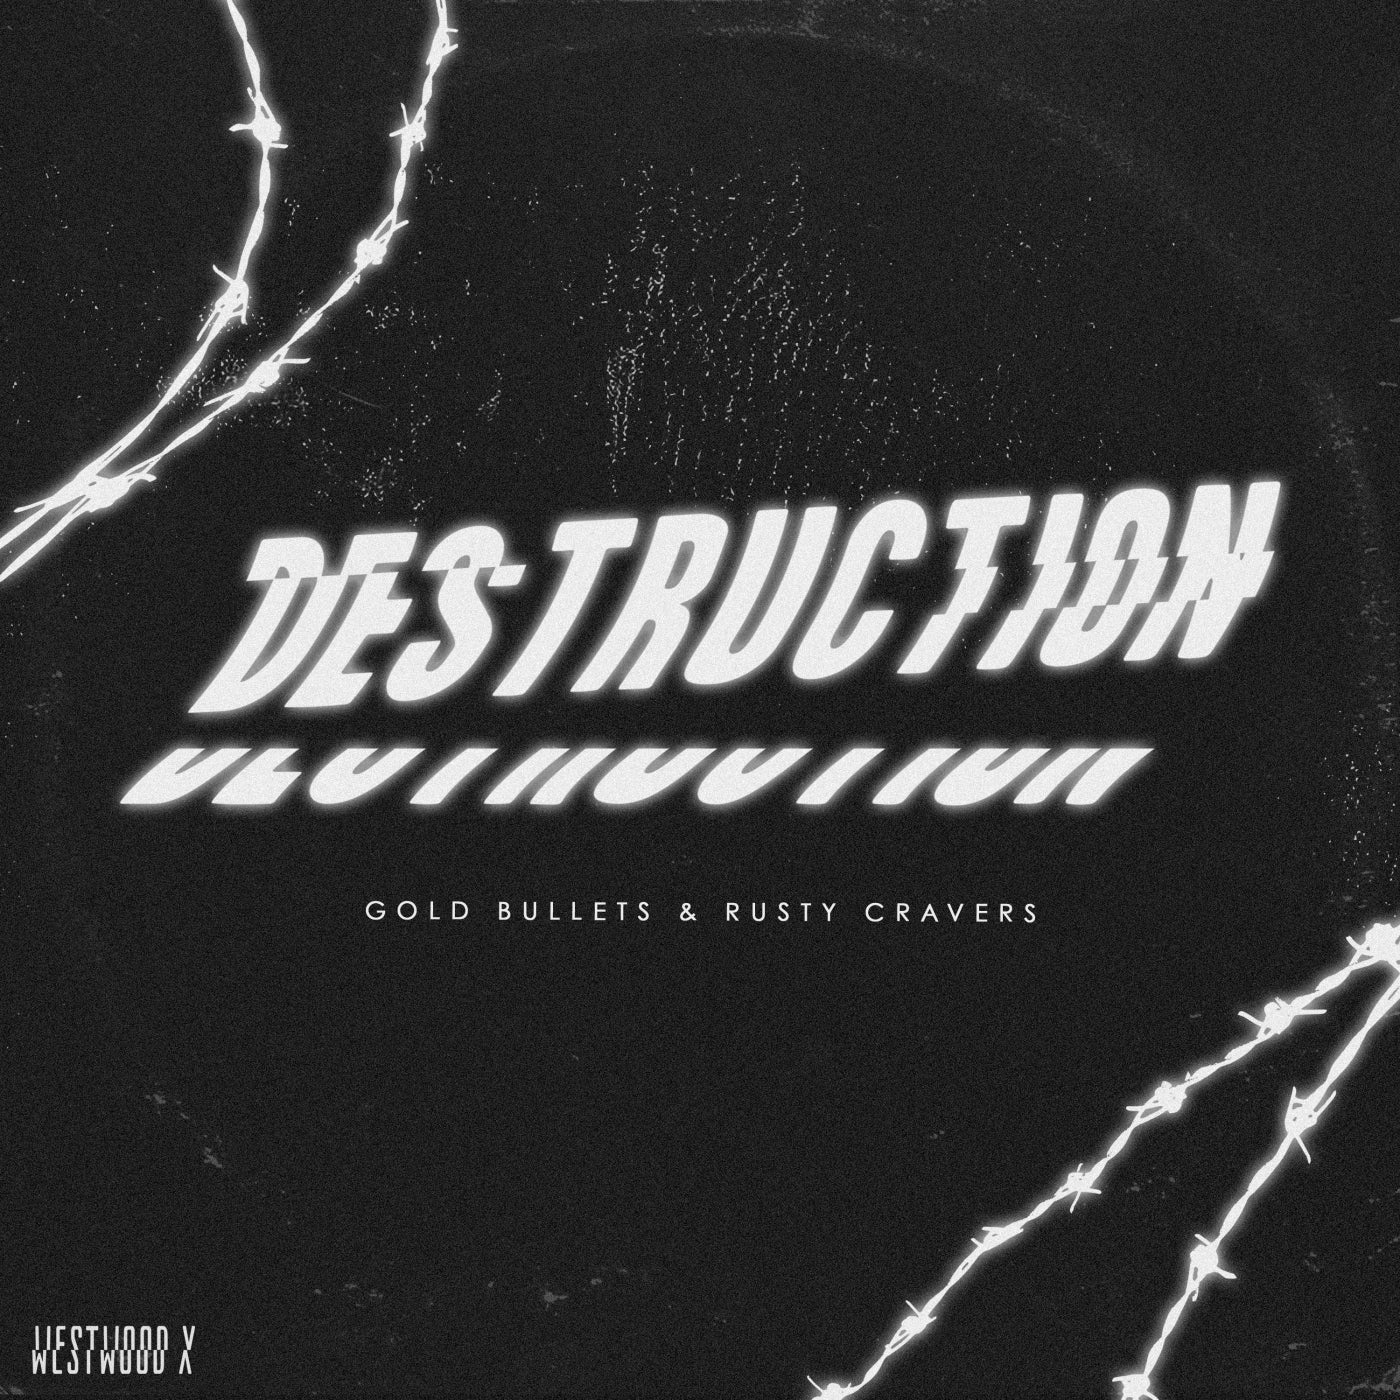 Gold Bullets & Rusty Cravers - Destruction